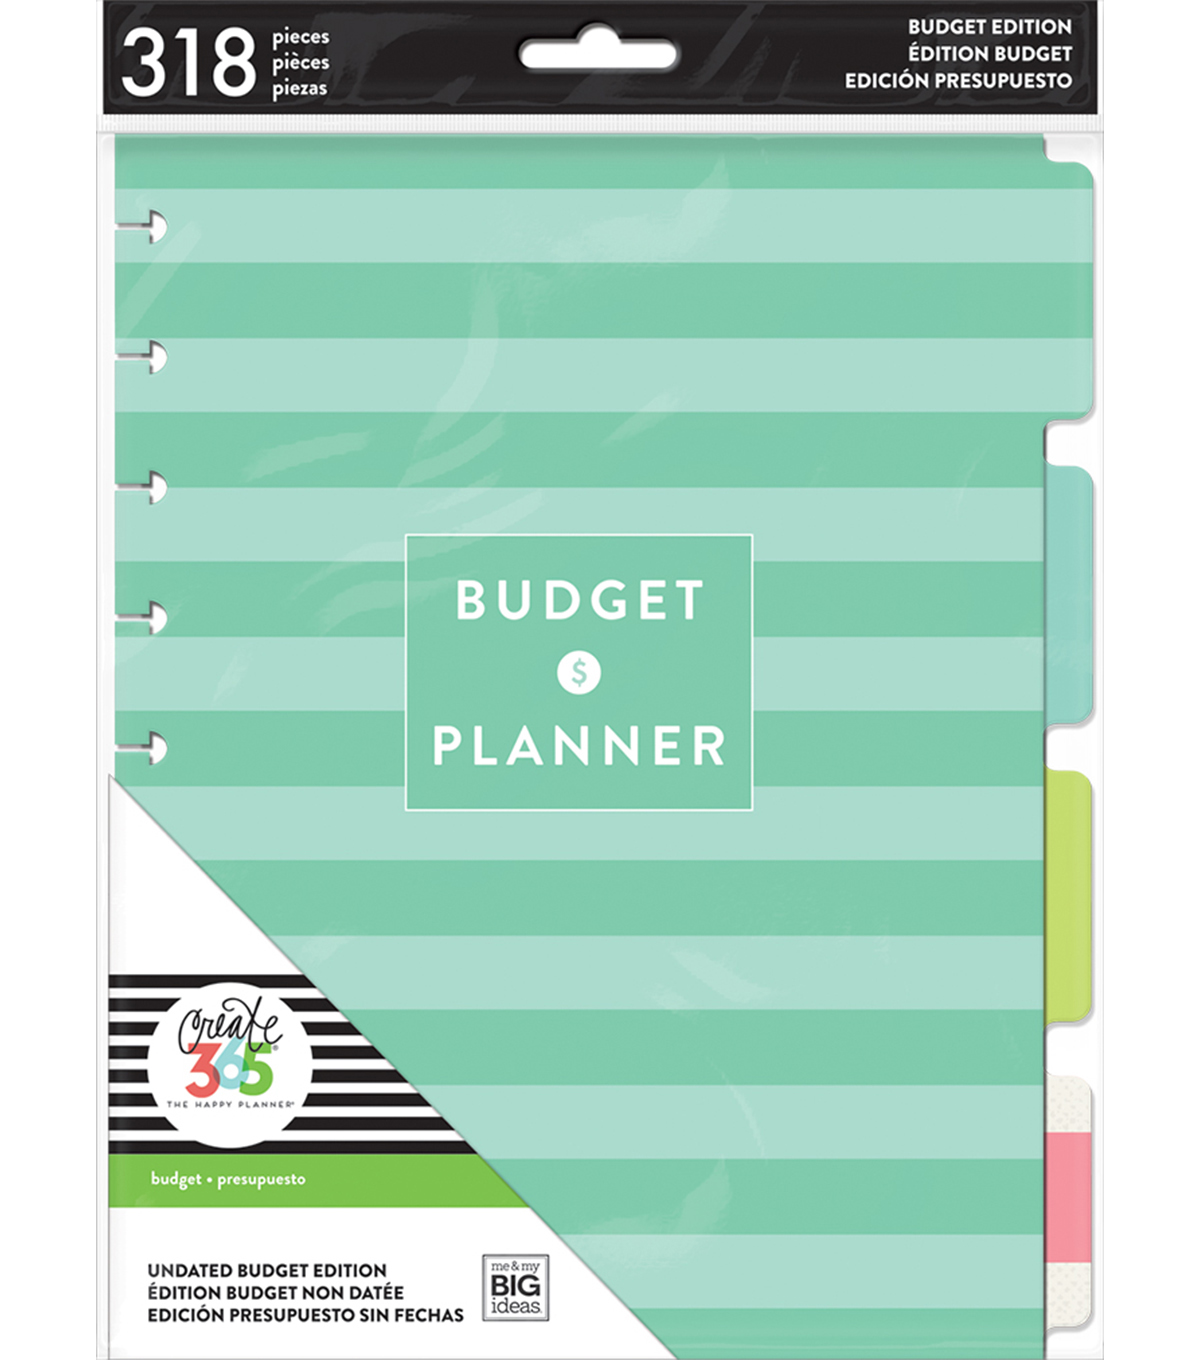 The Happy Planner Budget Edition Expansion Pack